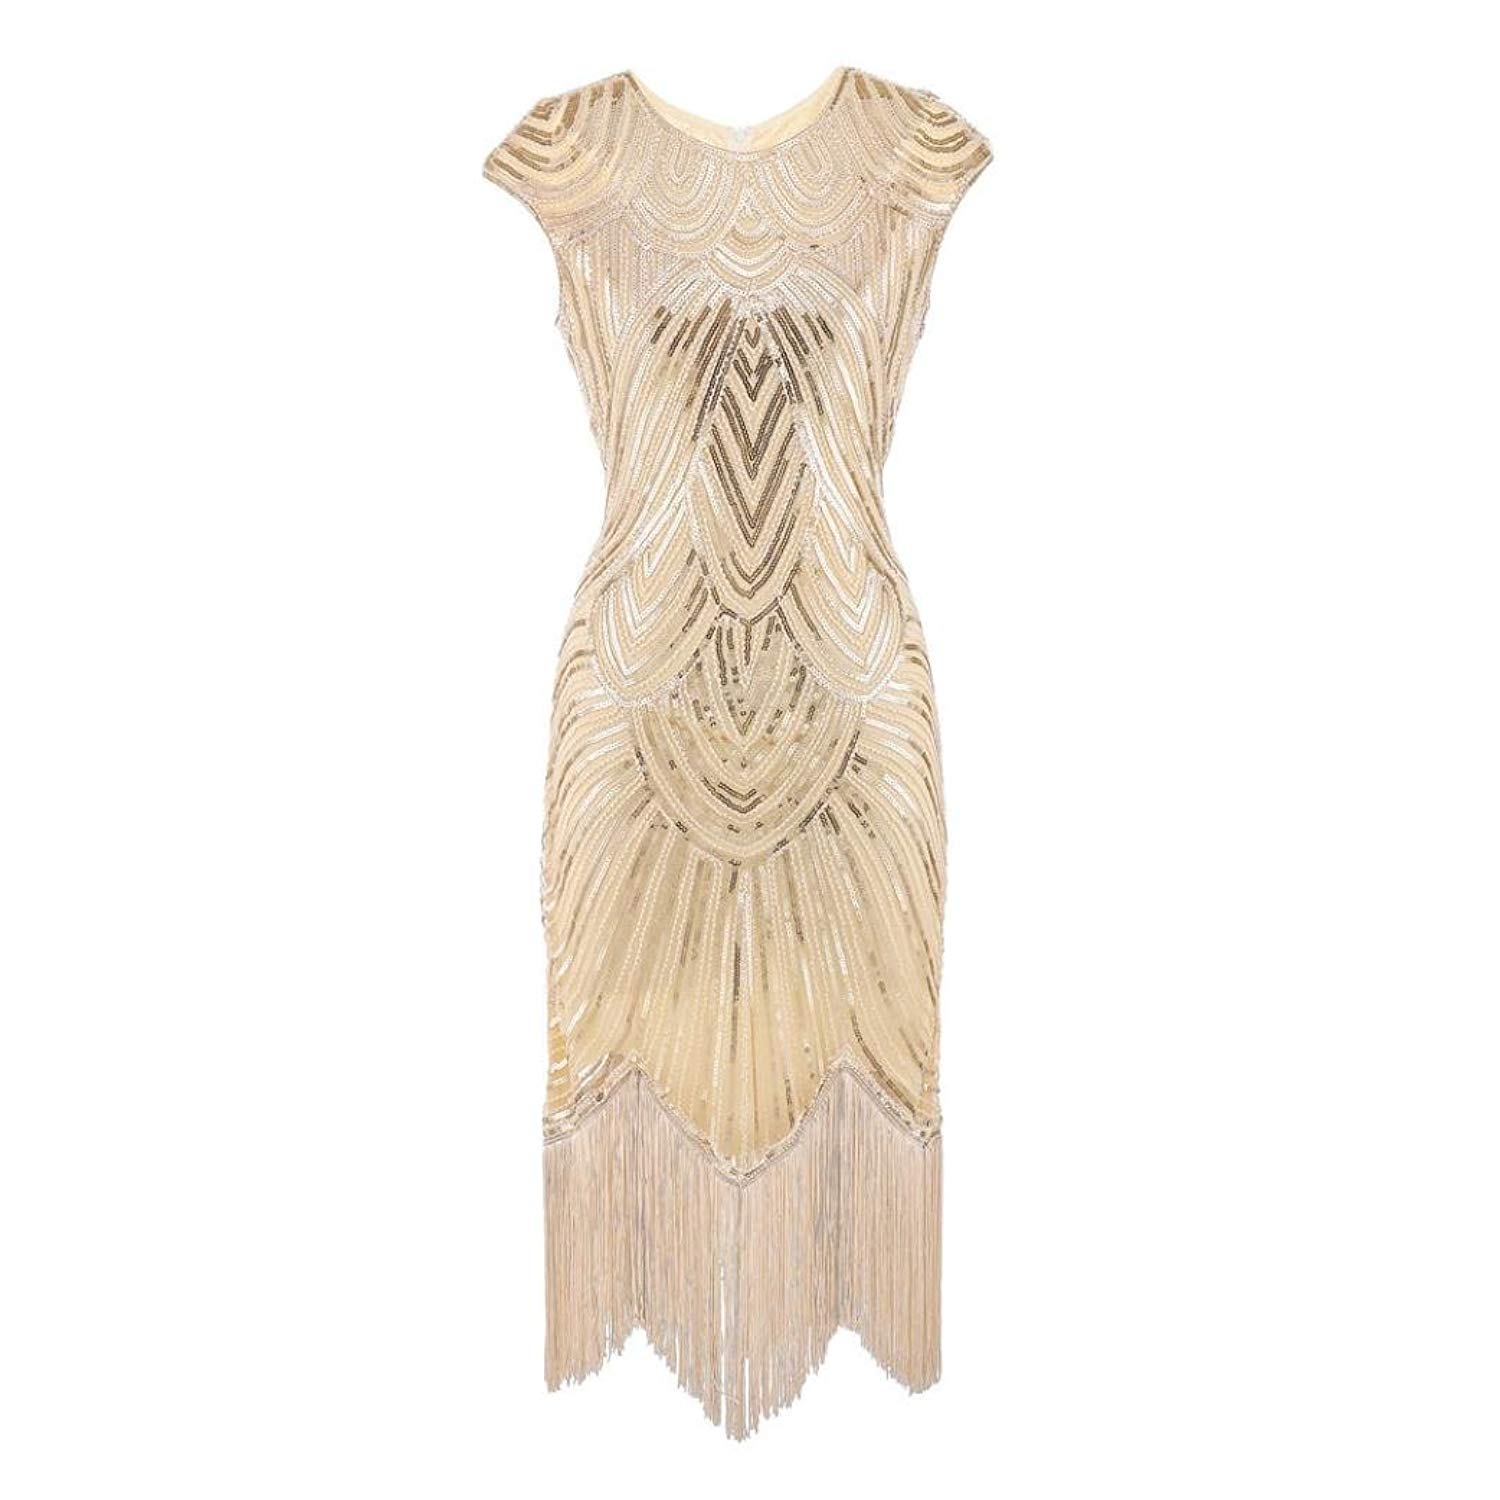 02aa9d232c367 Cheap Beaded Art Deco Dress, find Beaded Art Deco Dress deals on ...